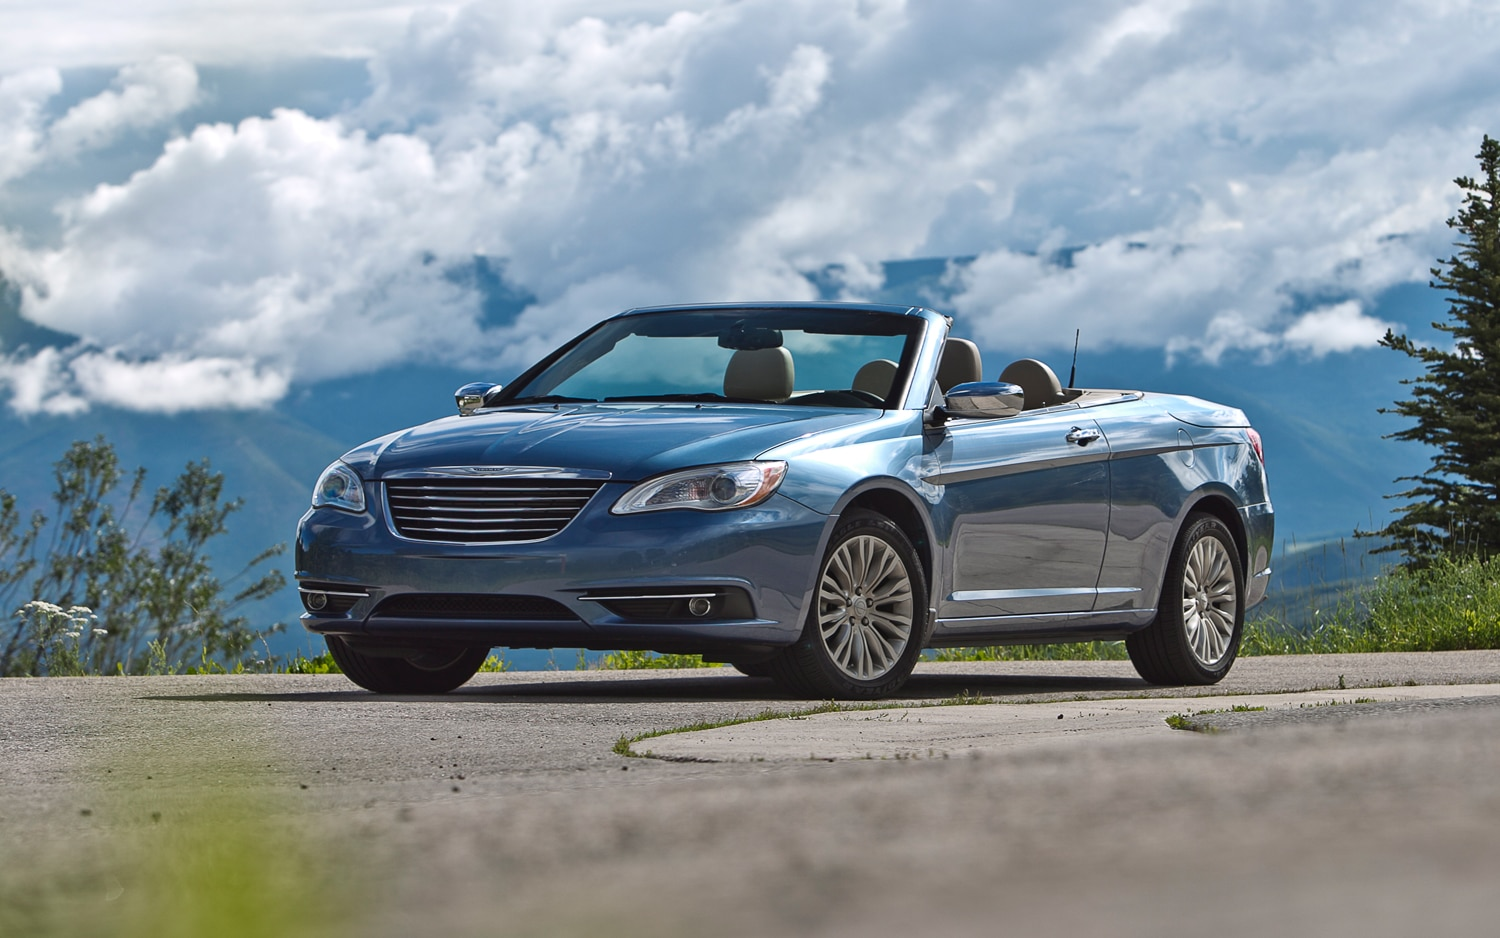 Chrysler 200 Mpg >> 2011 Chrysler 200 Limited Convertible - Editors' Notebook - Automobile Magazine